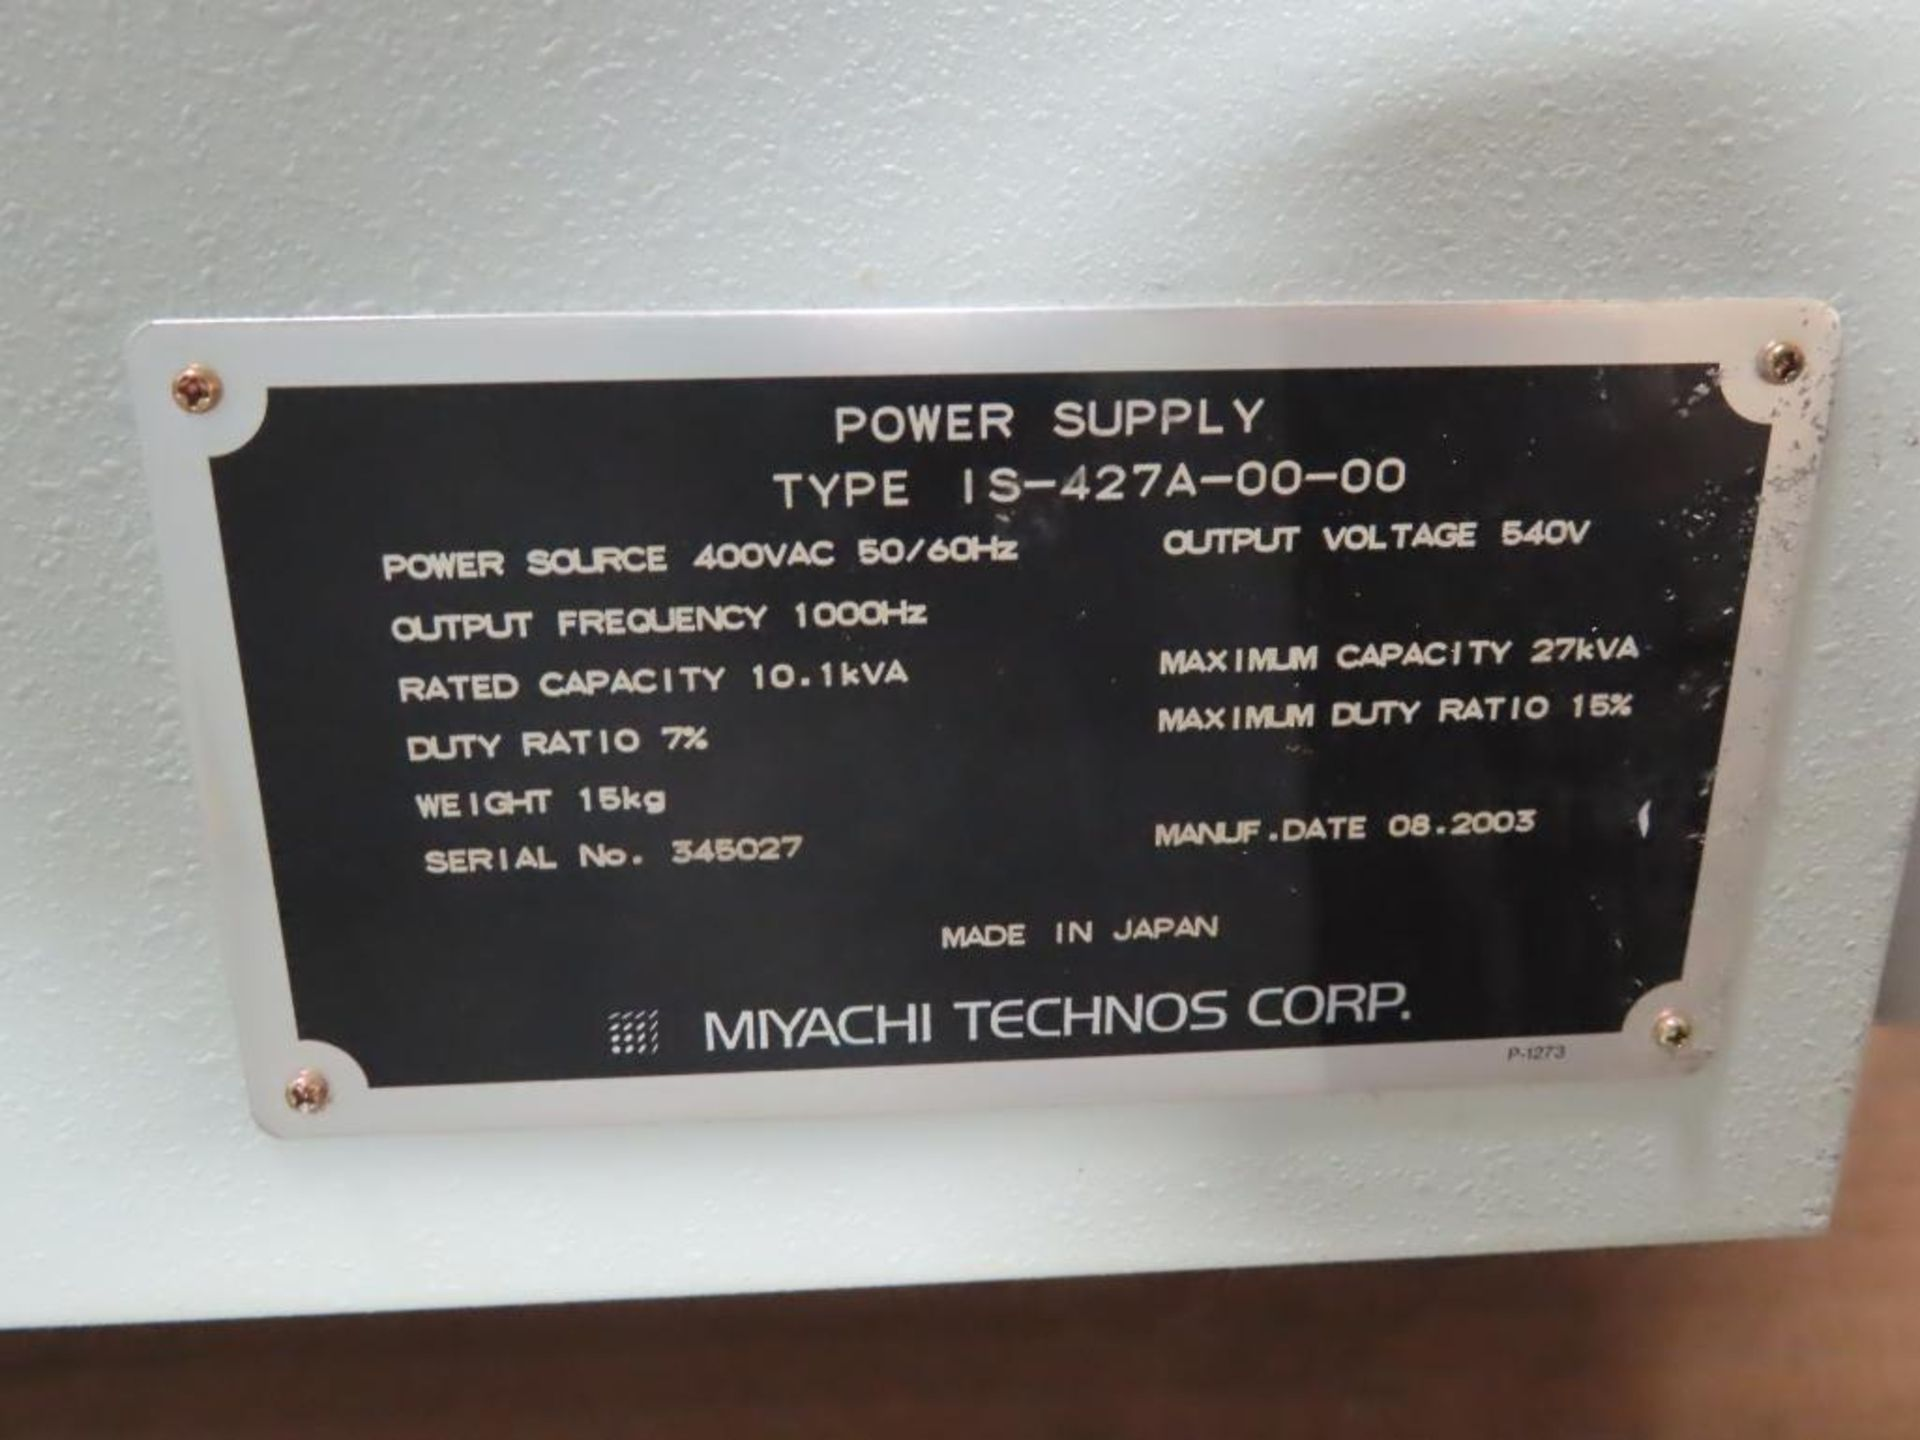 Lot 3 - Miyachi Technos welding power supply type IS-427A-00-00, 27.1kVA max, 540v output.